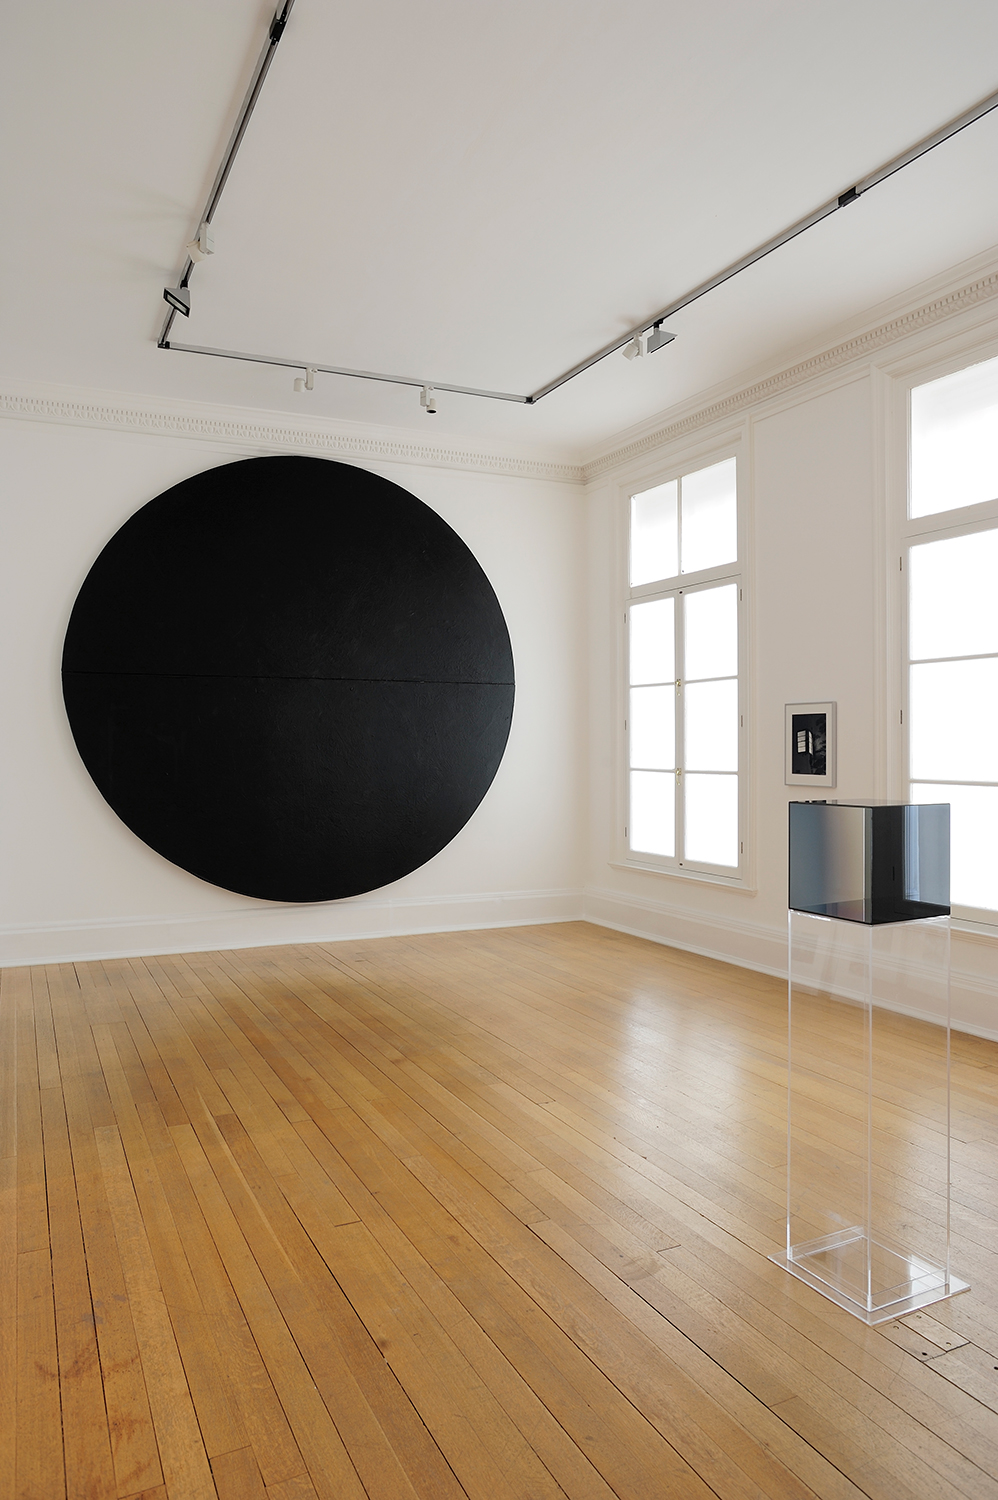 Sunless , Thomas Dane Gallery, London, United Kingdom, 2010.    Wally Hedrick, James Welling, and Larry Bell